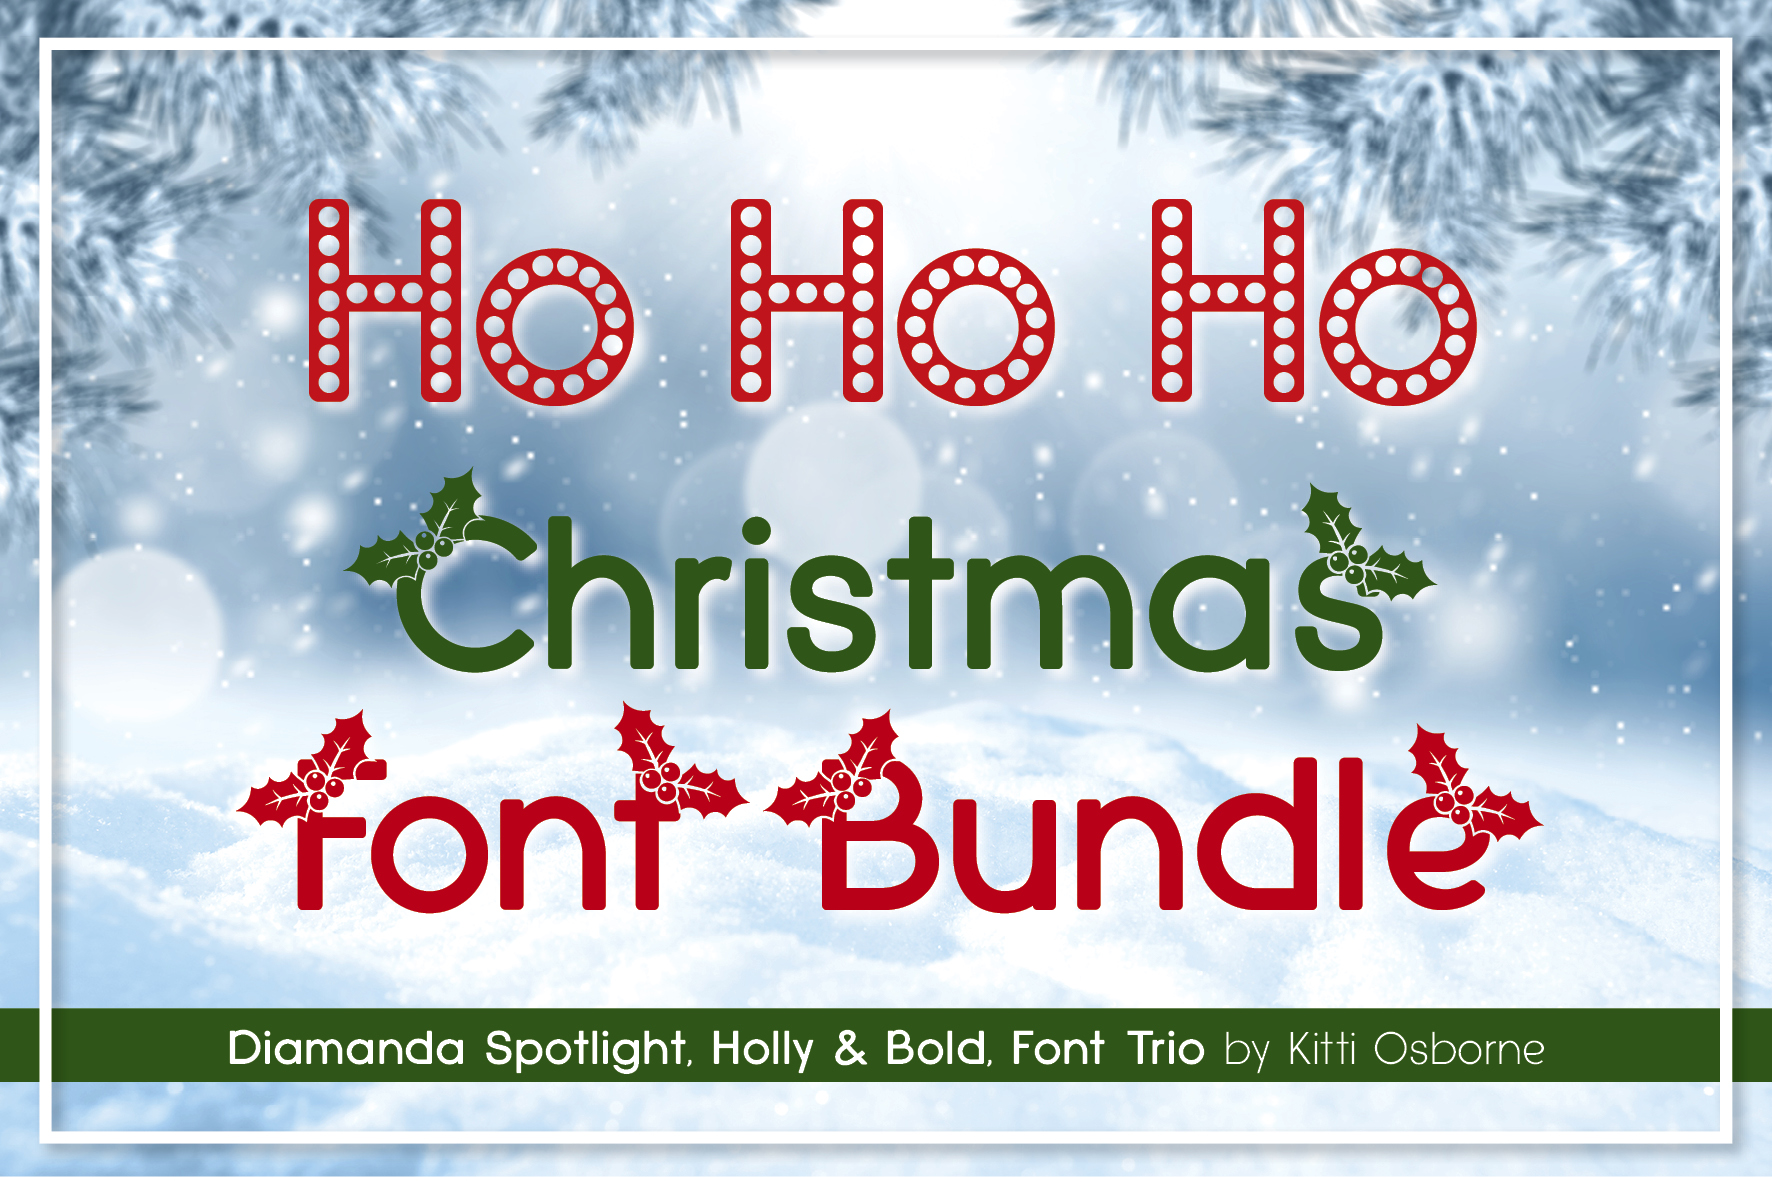 Spotlight, Holly and Bold, Diamanda Christmas Trio Bundle example image 1